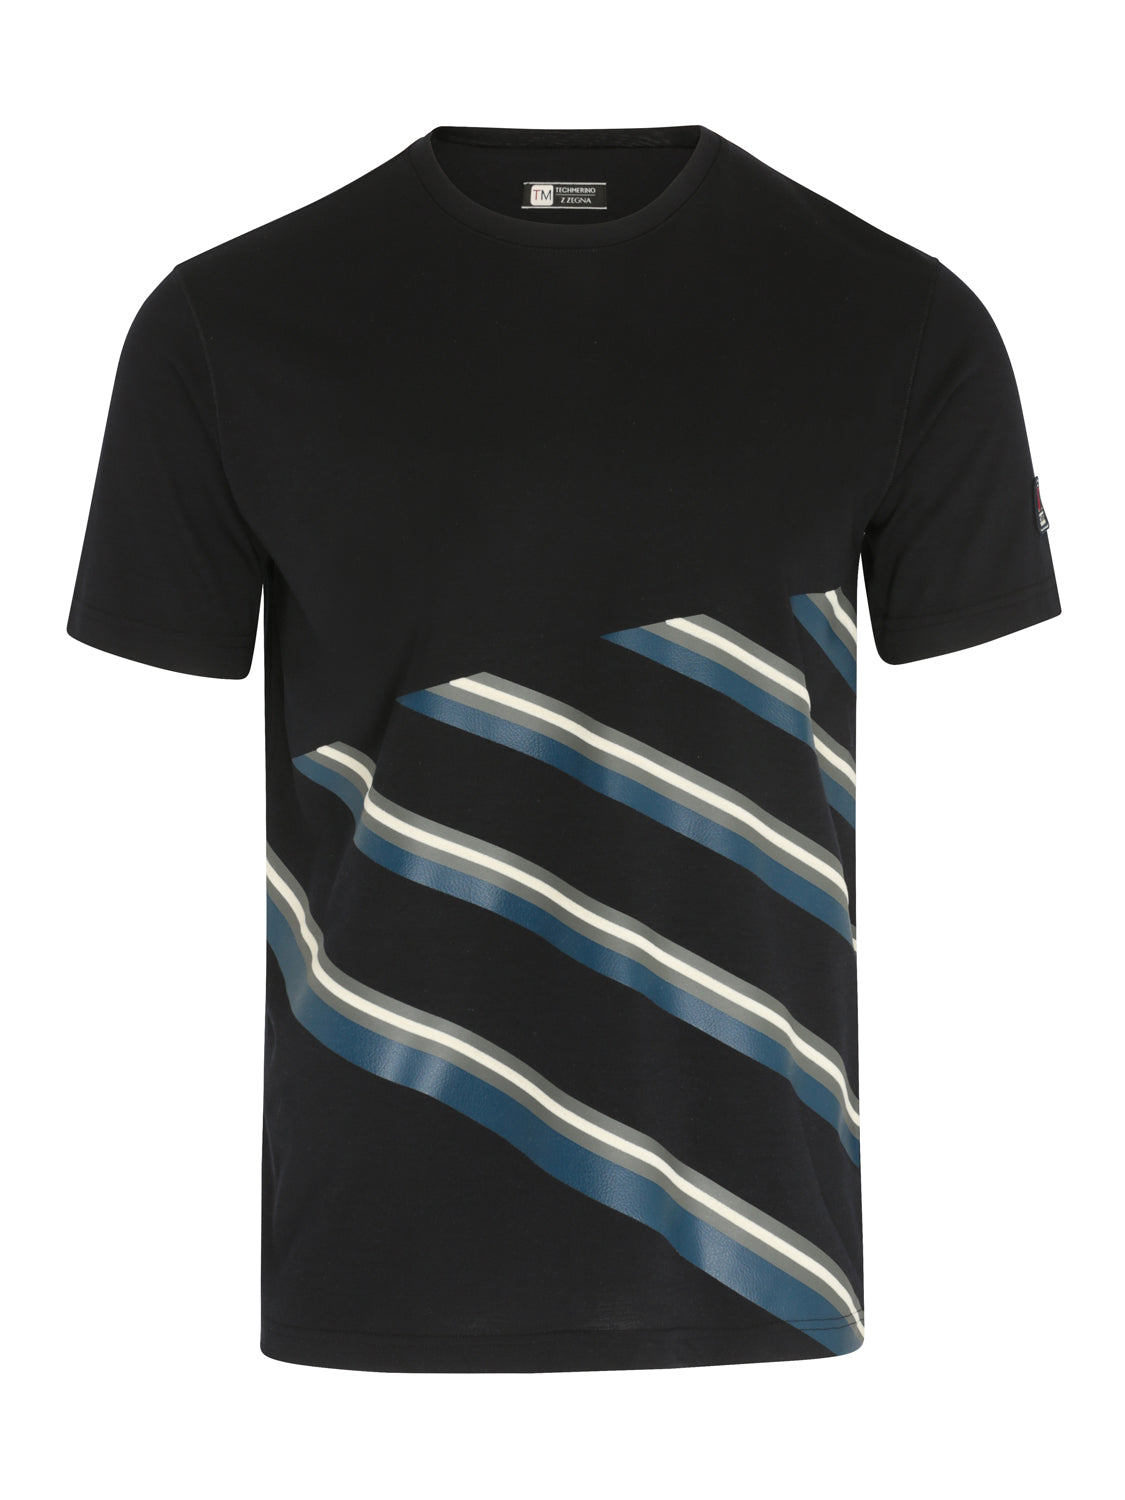 Z Zegna TECHMERINO™ T-Shirt (Navy) - Union 22